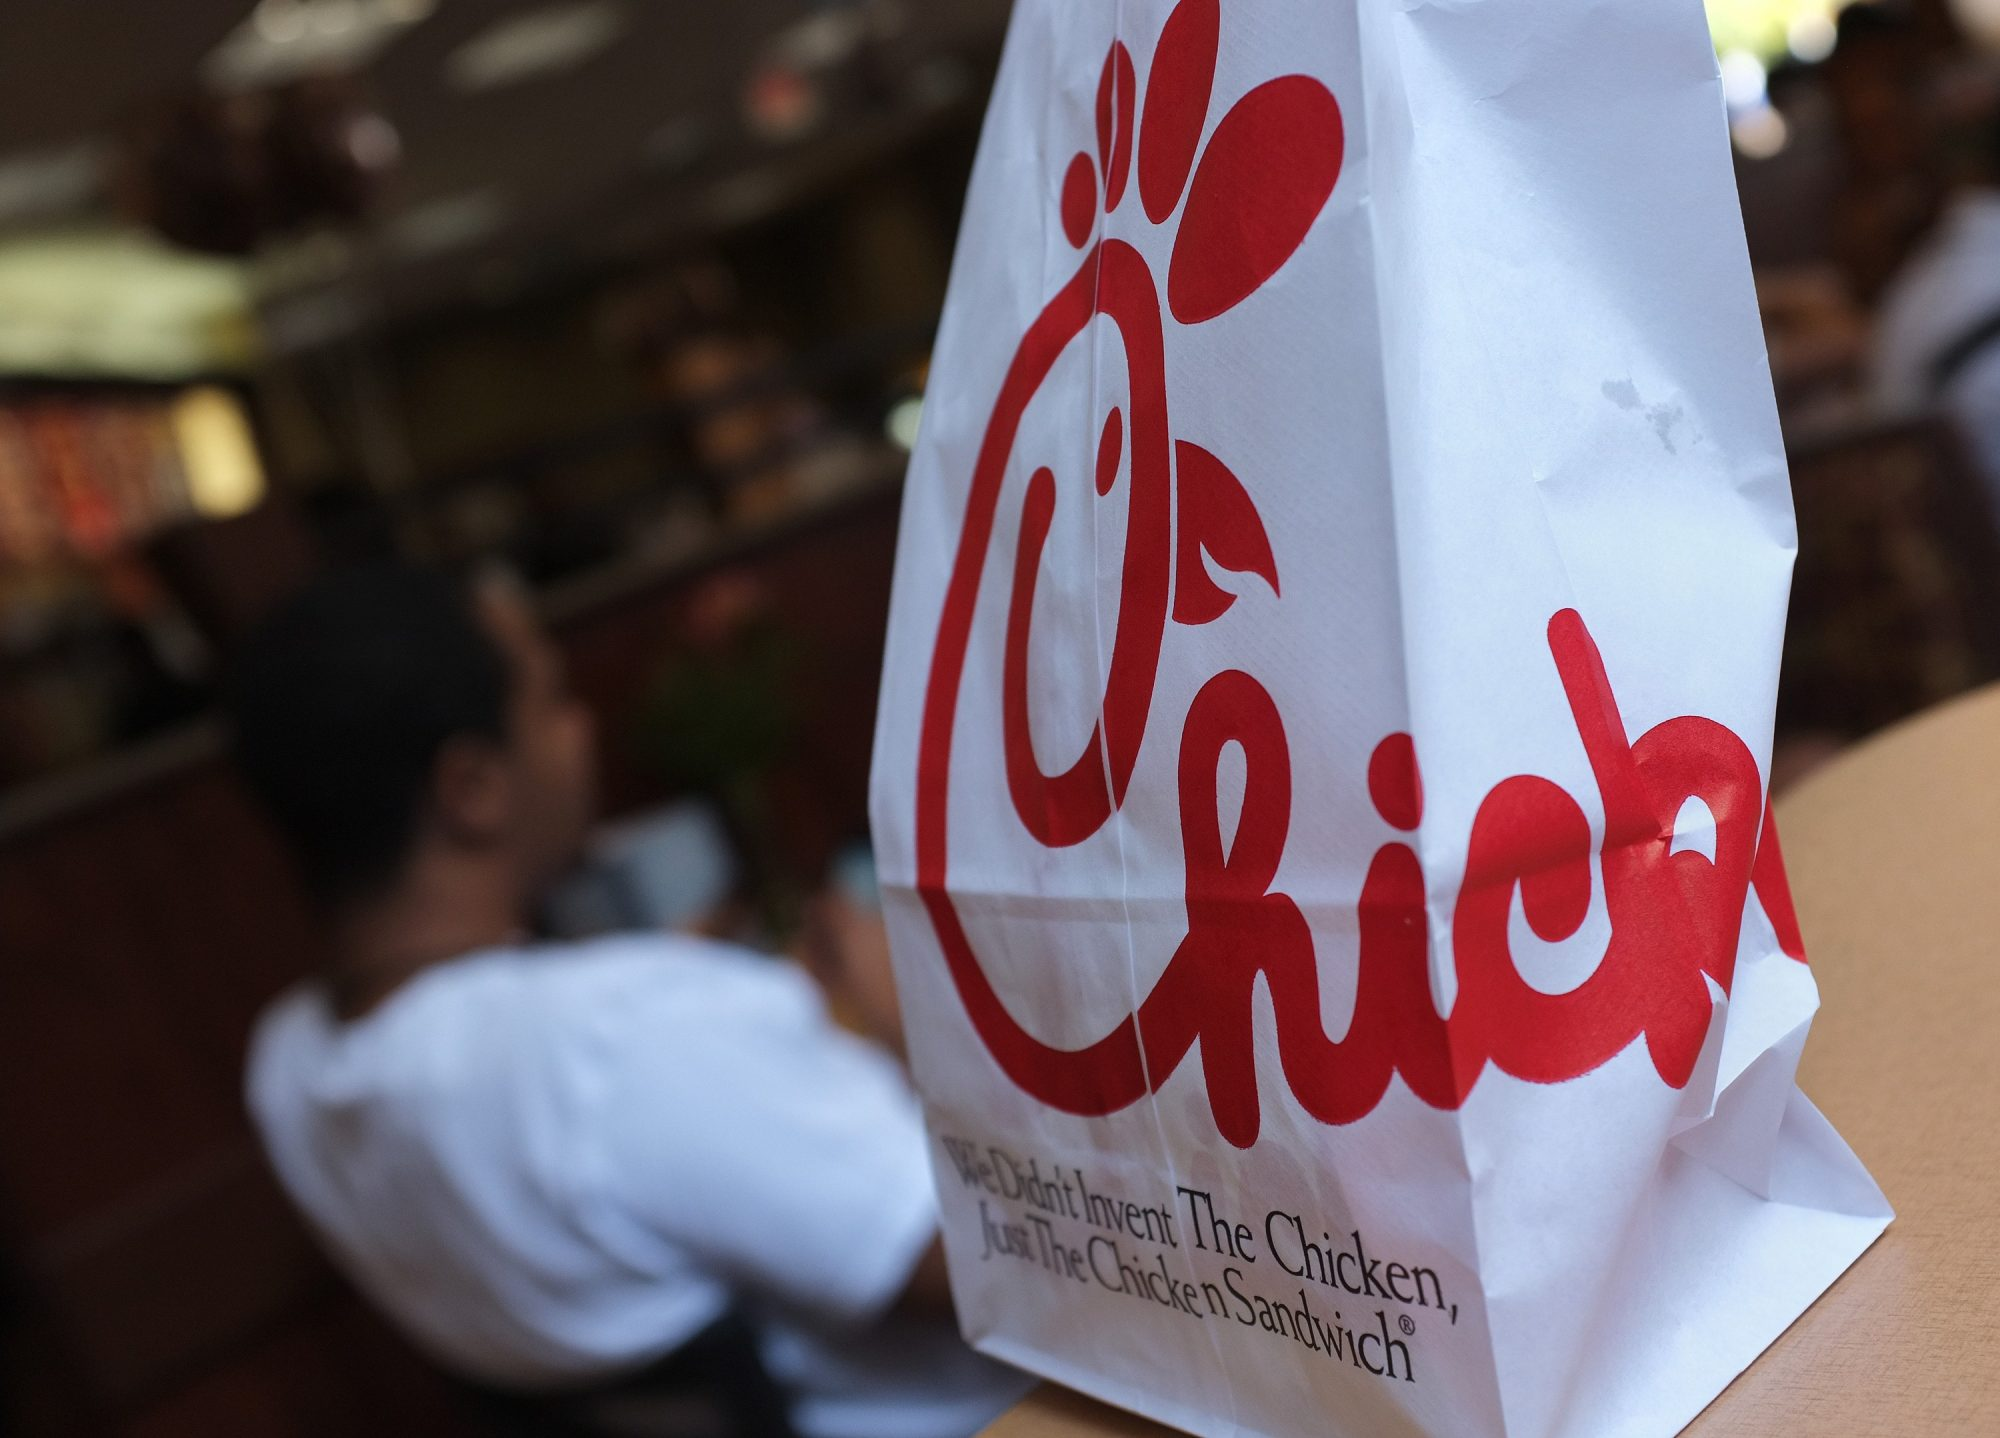 Chick-fil-a Bag Logo